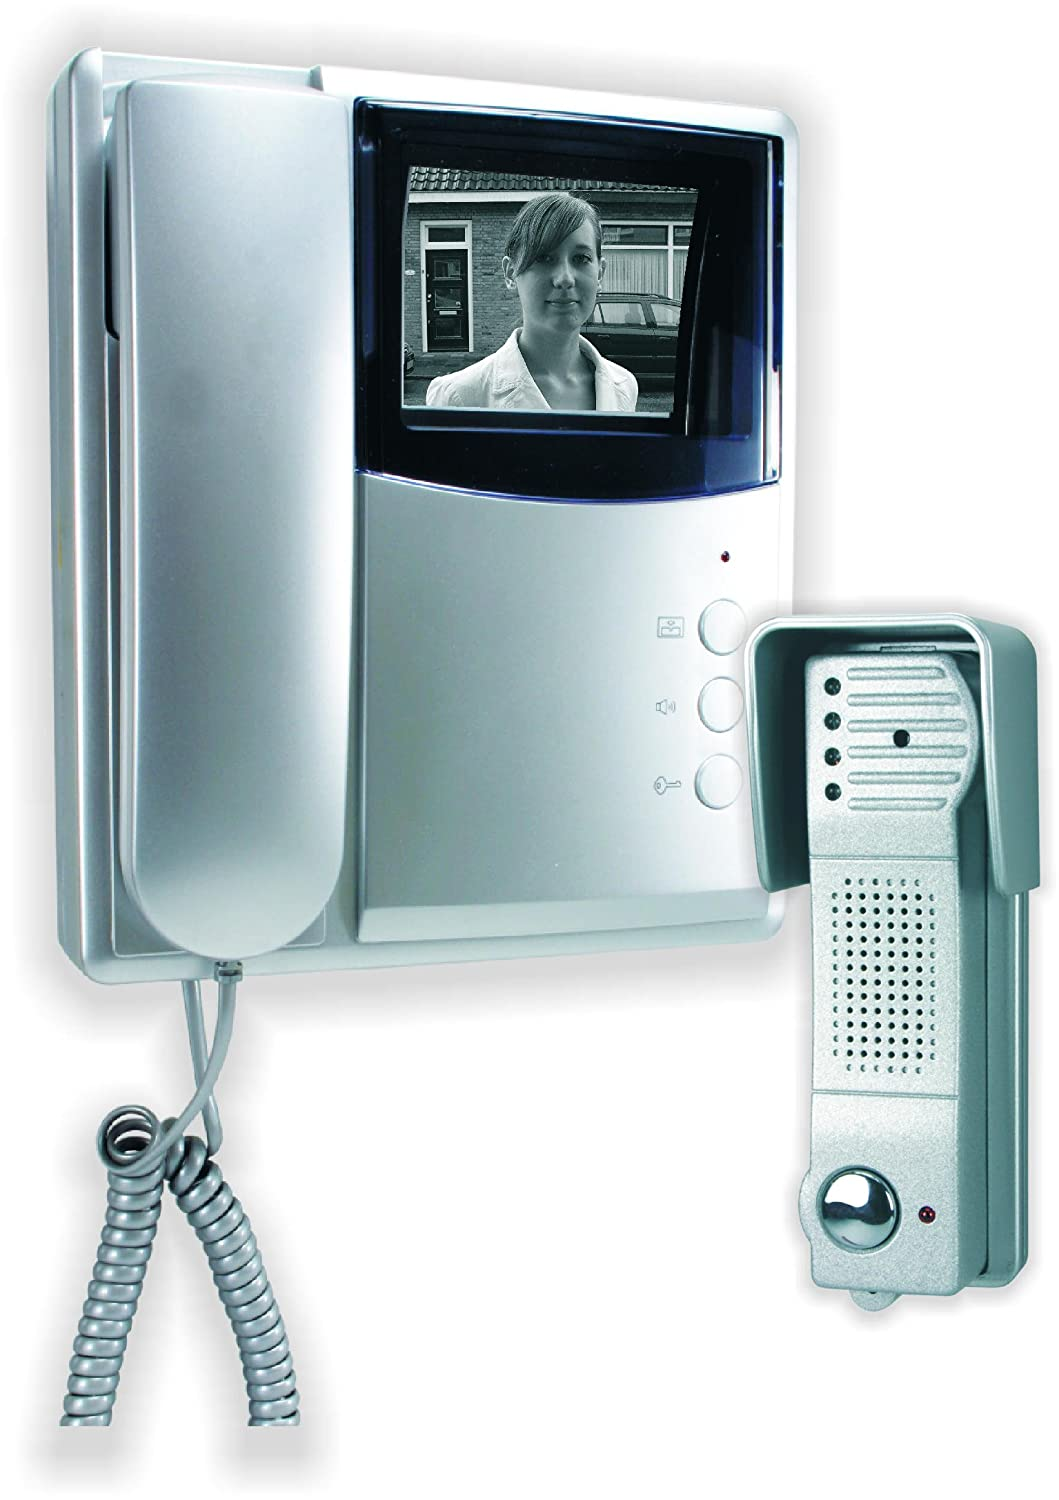 sc 1 st  Amazon.com & ELRO VD53A Video Door Intercom by ELRO - Household Doors - Amazon.com